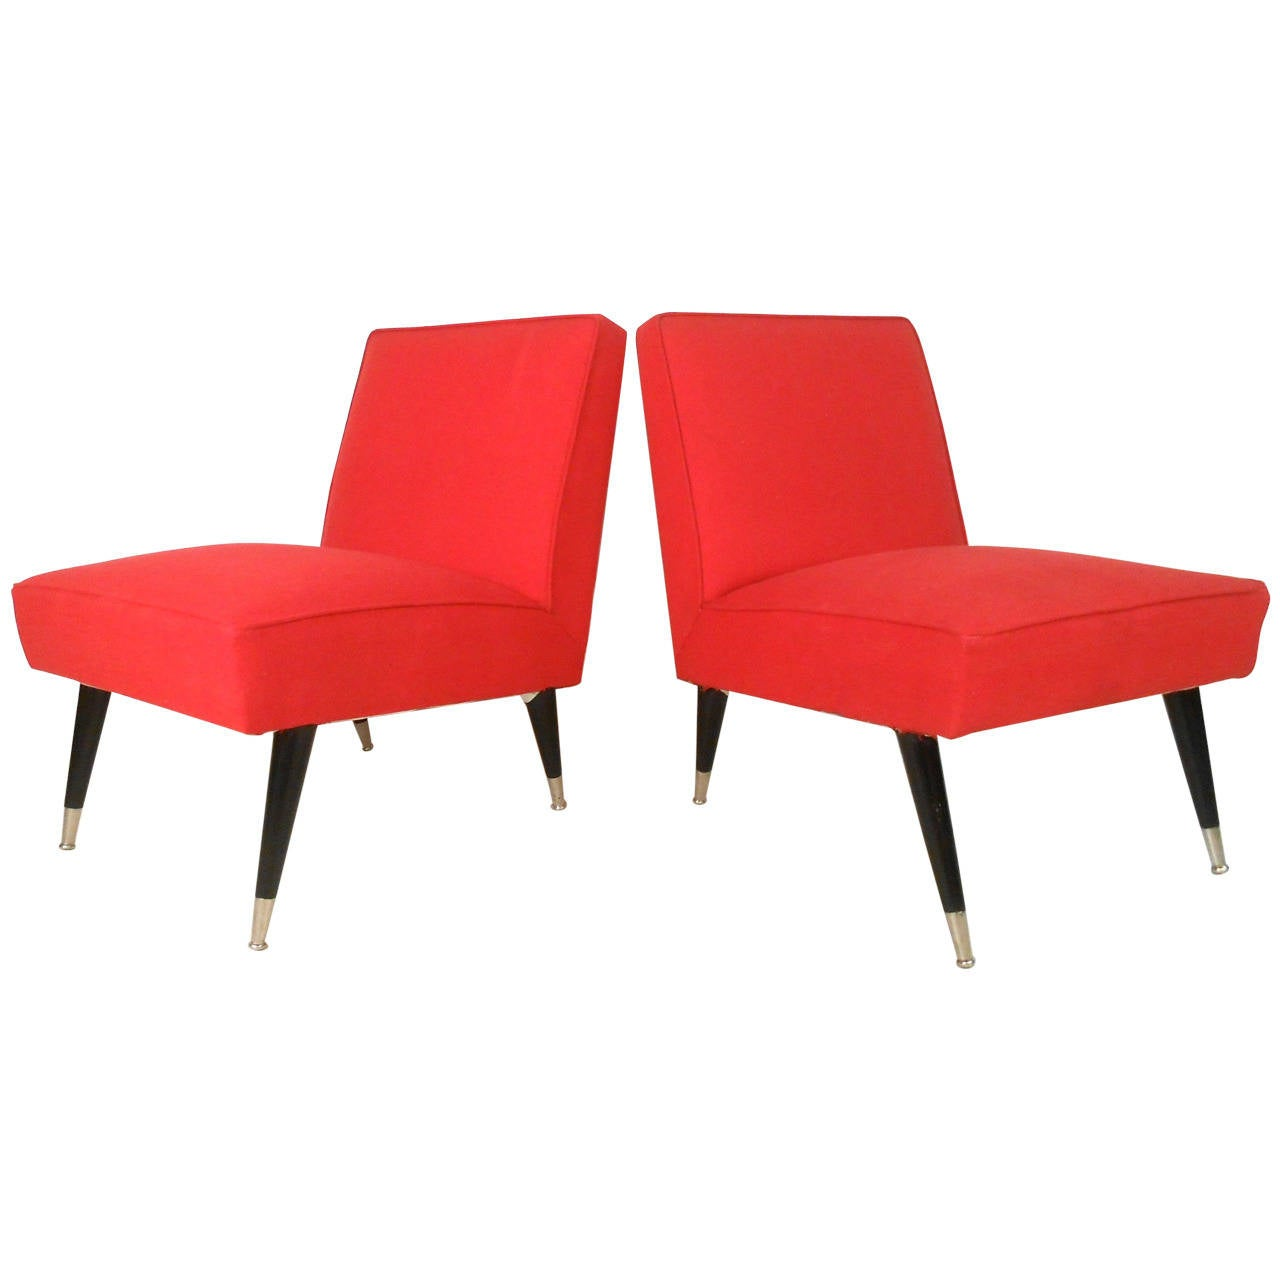 Pair Mid Century Modern Italian Style Slipper Chairs For Sale at